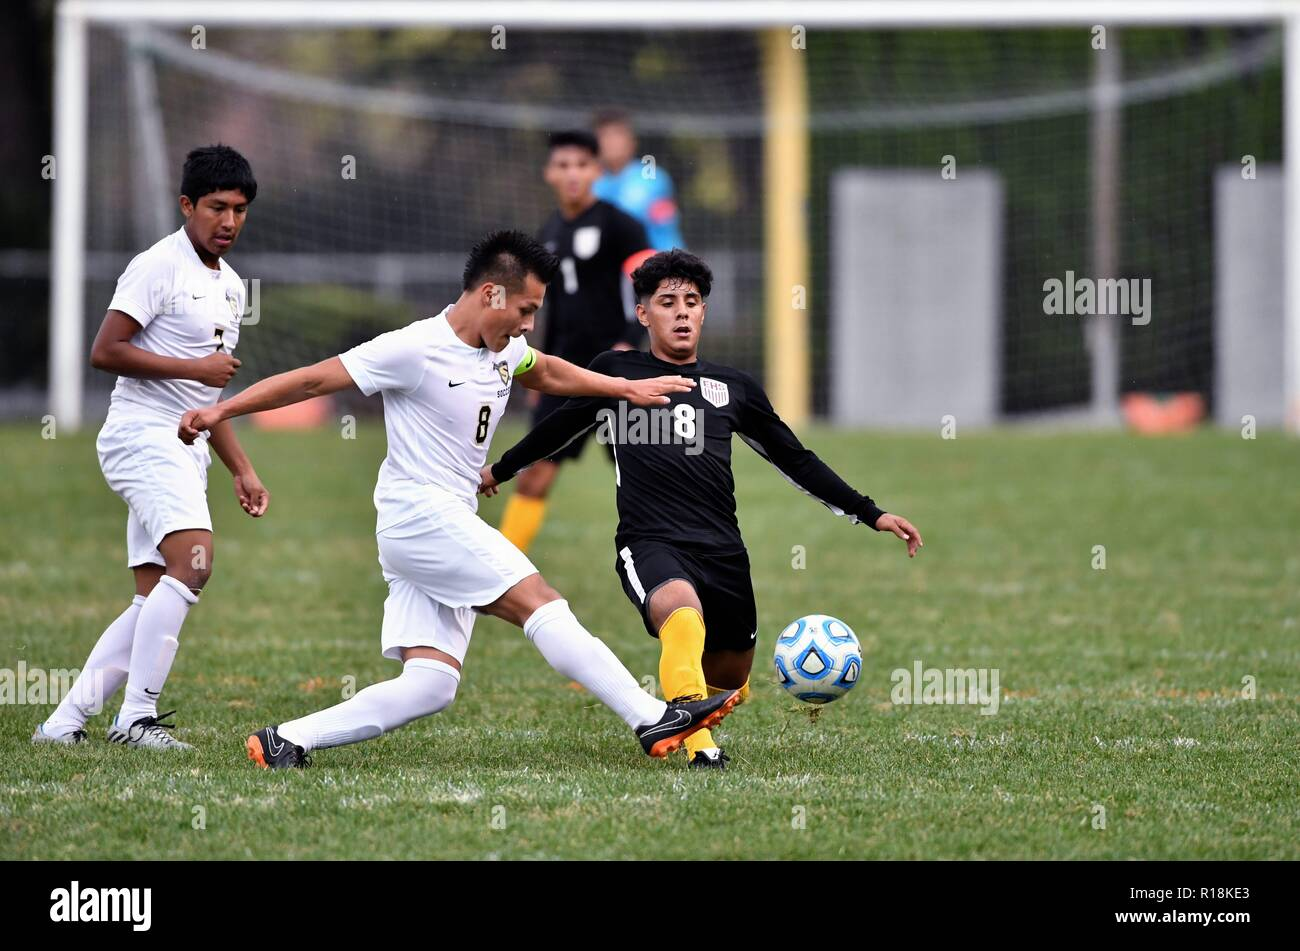 Players battling for possession of the ball. USA. - Stock Image